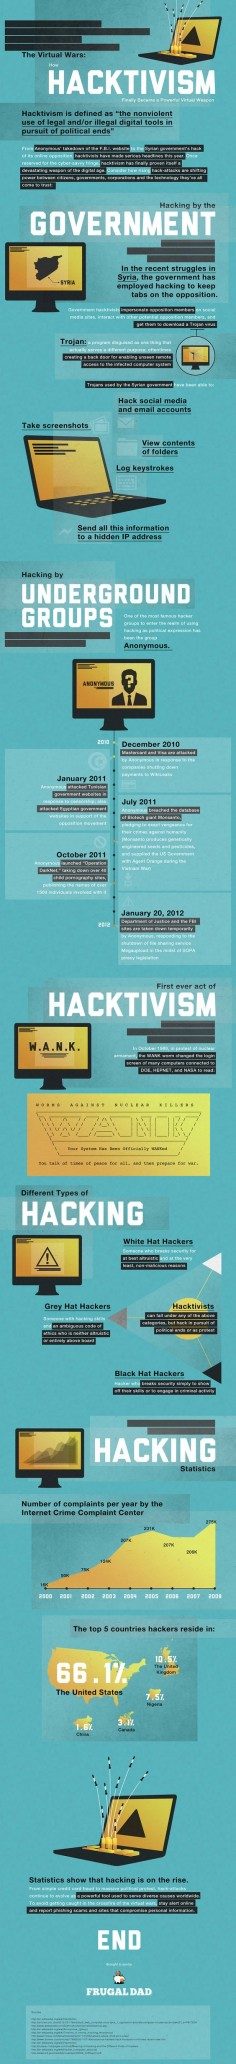 Hacktivism has hit its tipping point. The year 2011 had the most hacktivism-related crimes in history. The way hacktivists define themselves is important — they don't want to be associated with cyber criminals who hack websites for financial gain. Hacktivists set out to make political statements by attacking targeted websites and breaching databases.